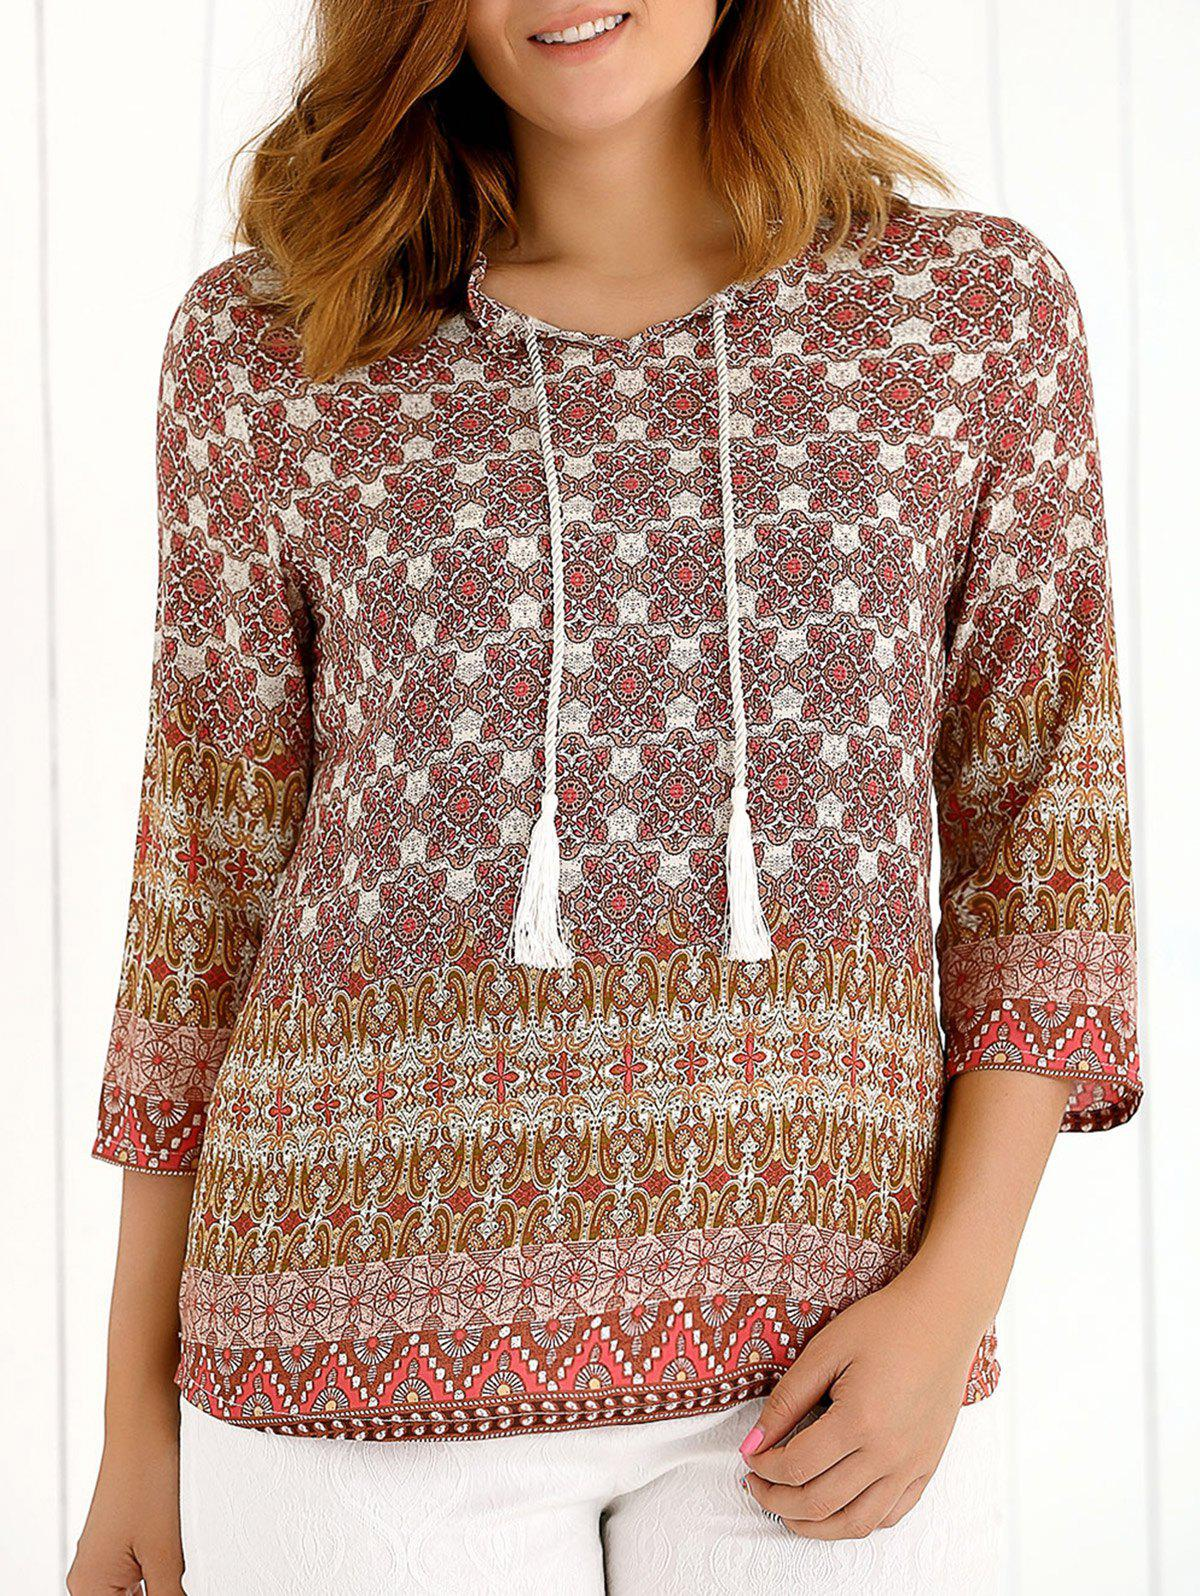 Tassel imprimé tribal manches 3/4 Blouse - multicolorcolore XL